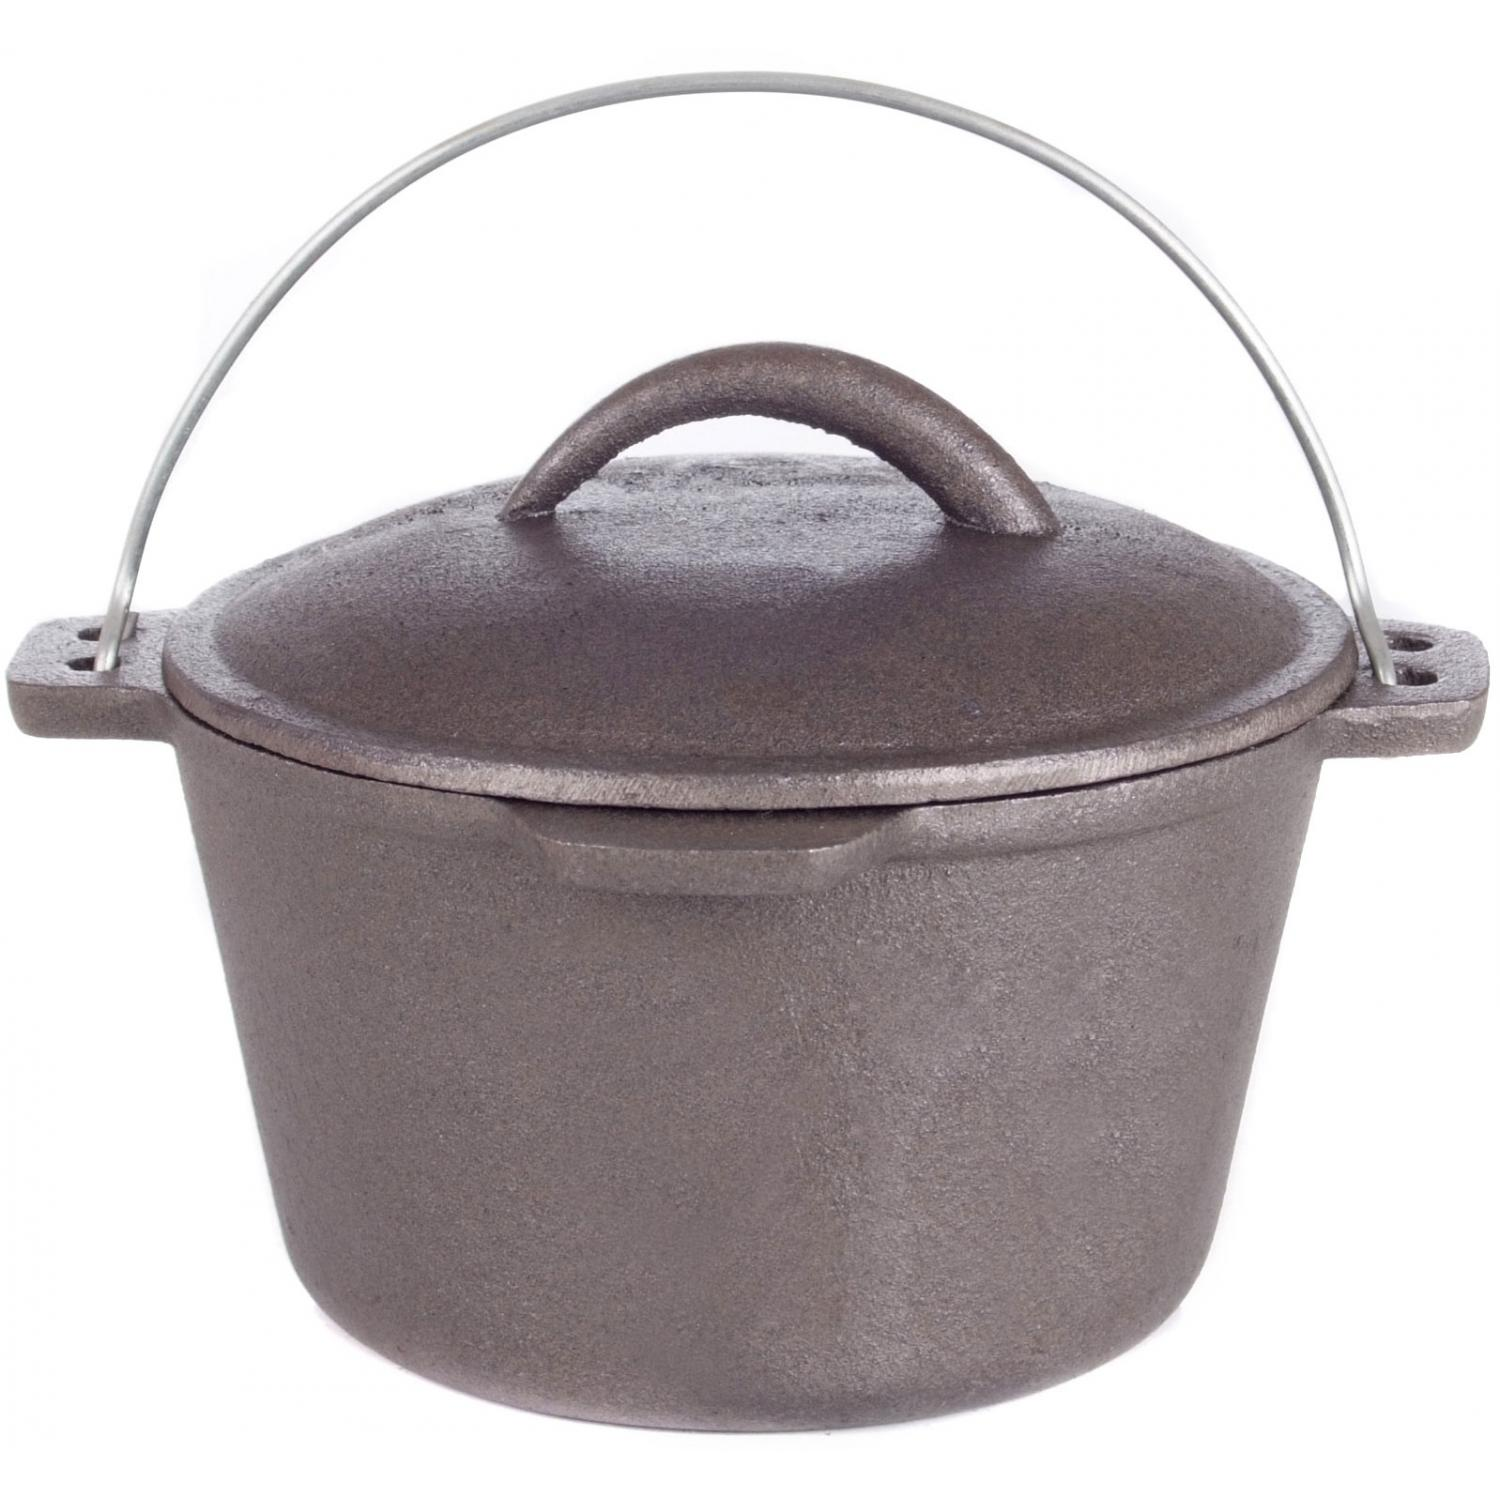 Cajun Cookware Dutch Ovens 1 Quart Cast Iron Dutch Oven